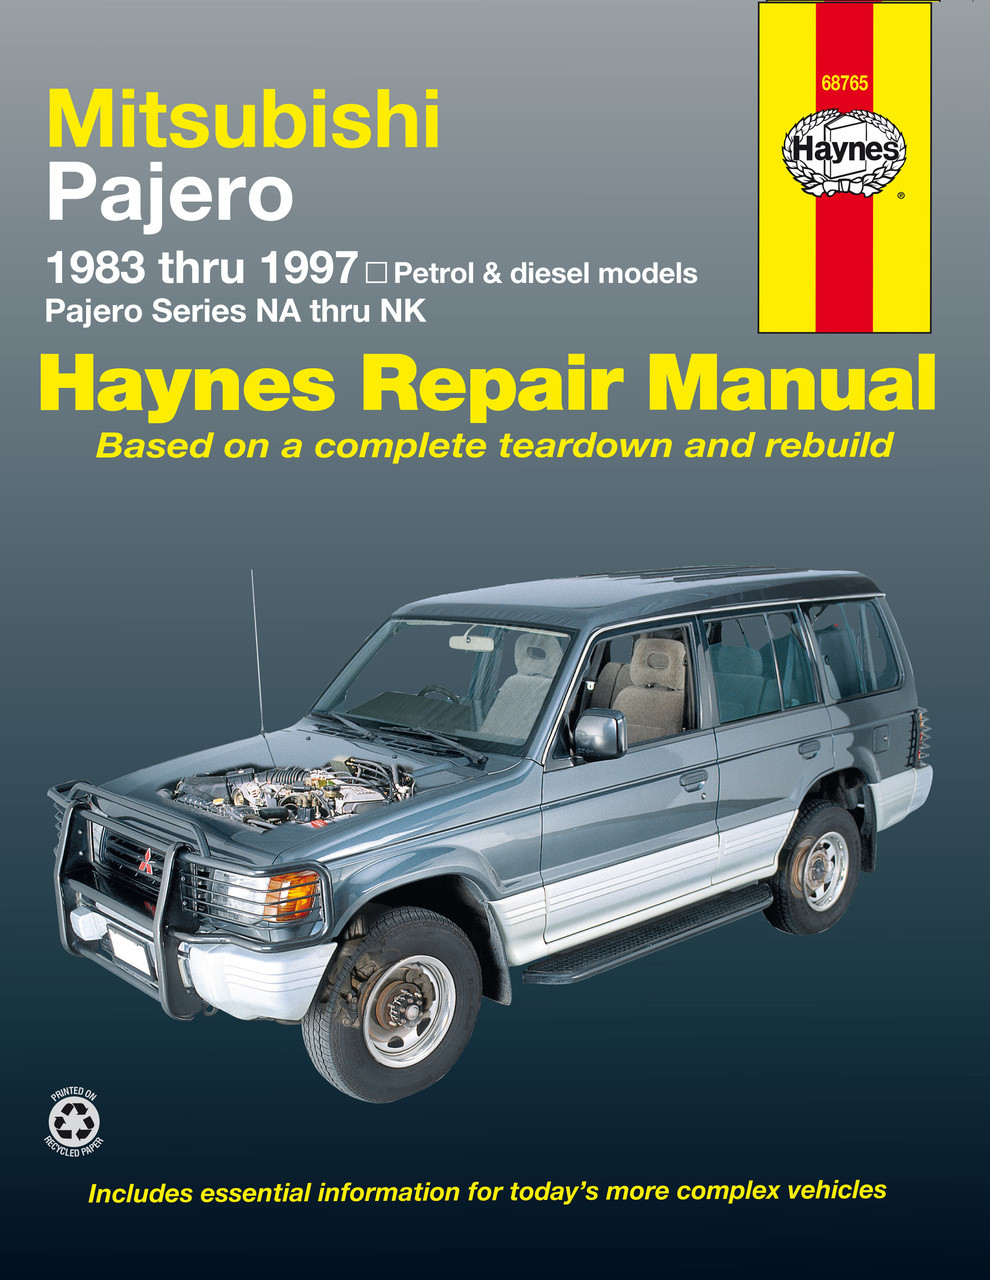 Mitsubishi Pajero NA thru NK, Petrol and Diesel 1983 - 1997 Workshop Manual